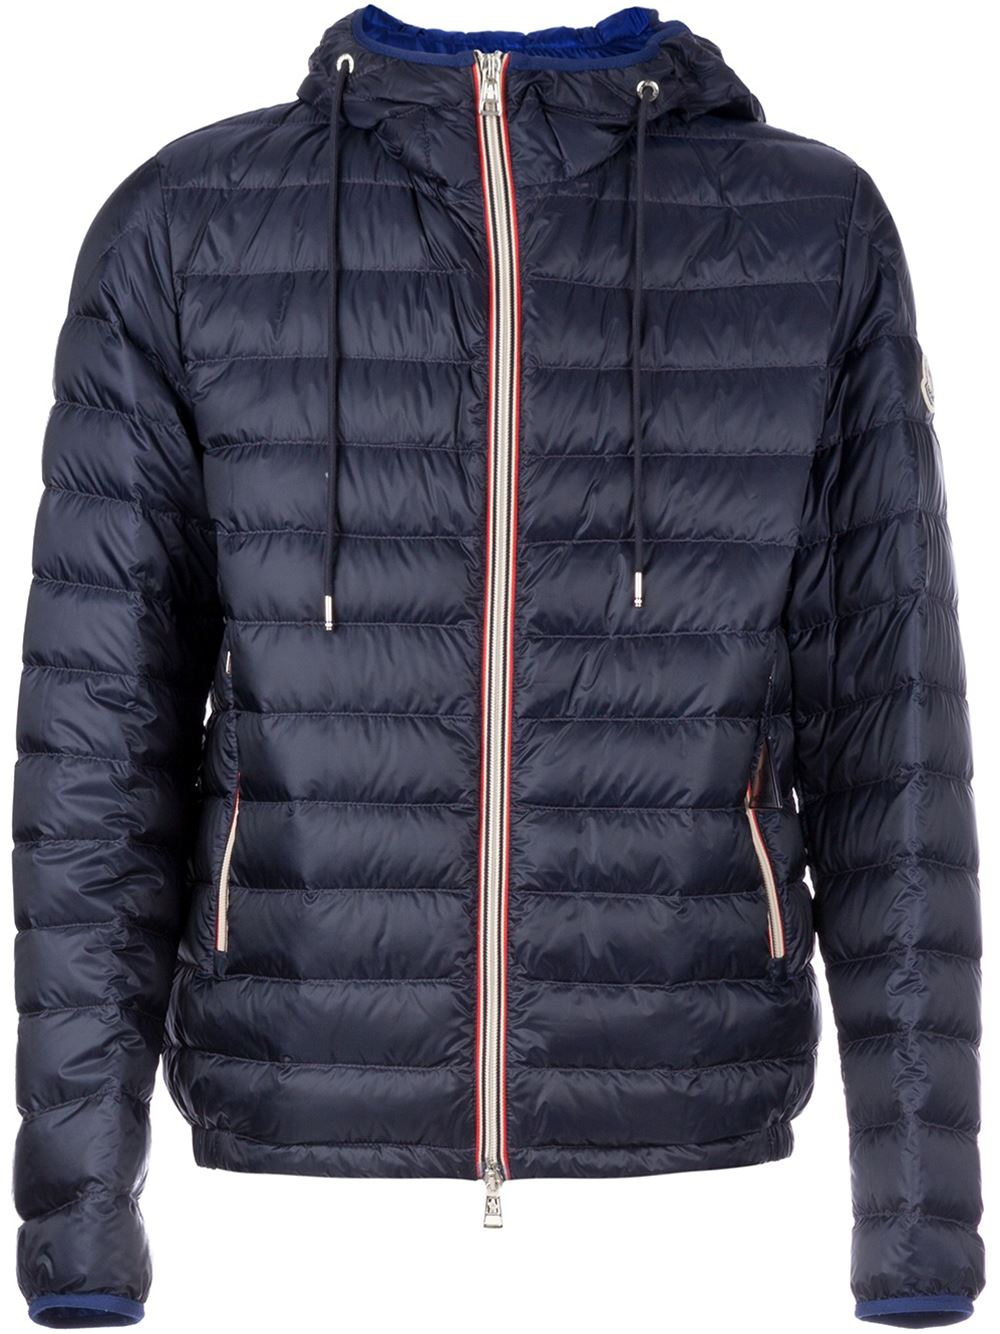 Blue padded jacket featuring black popper buttons and zip, two front pockets, elasticated cuff and adjustable elastic sides.